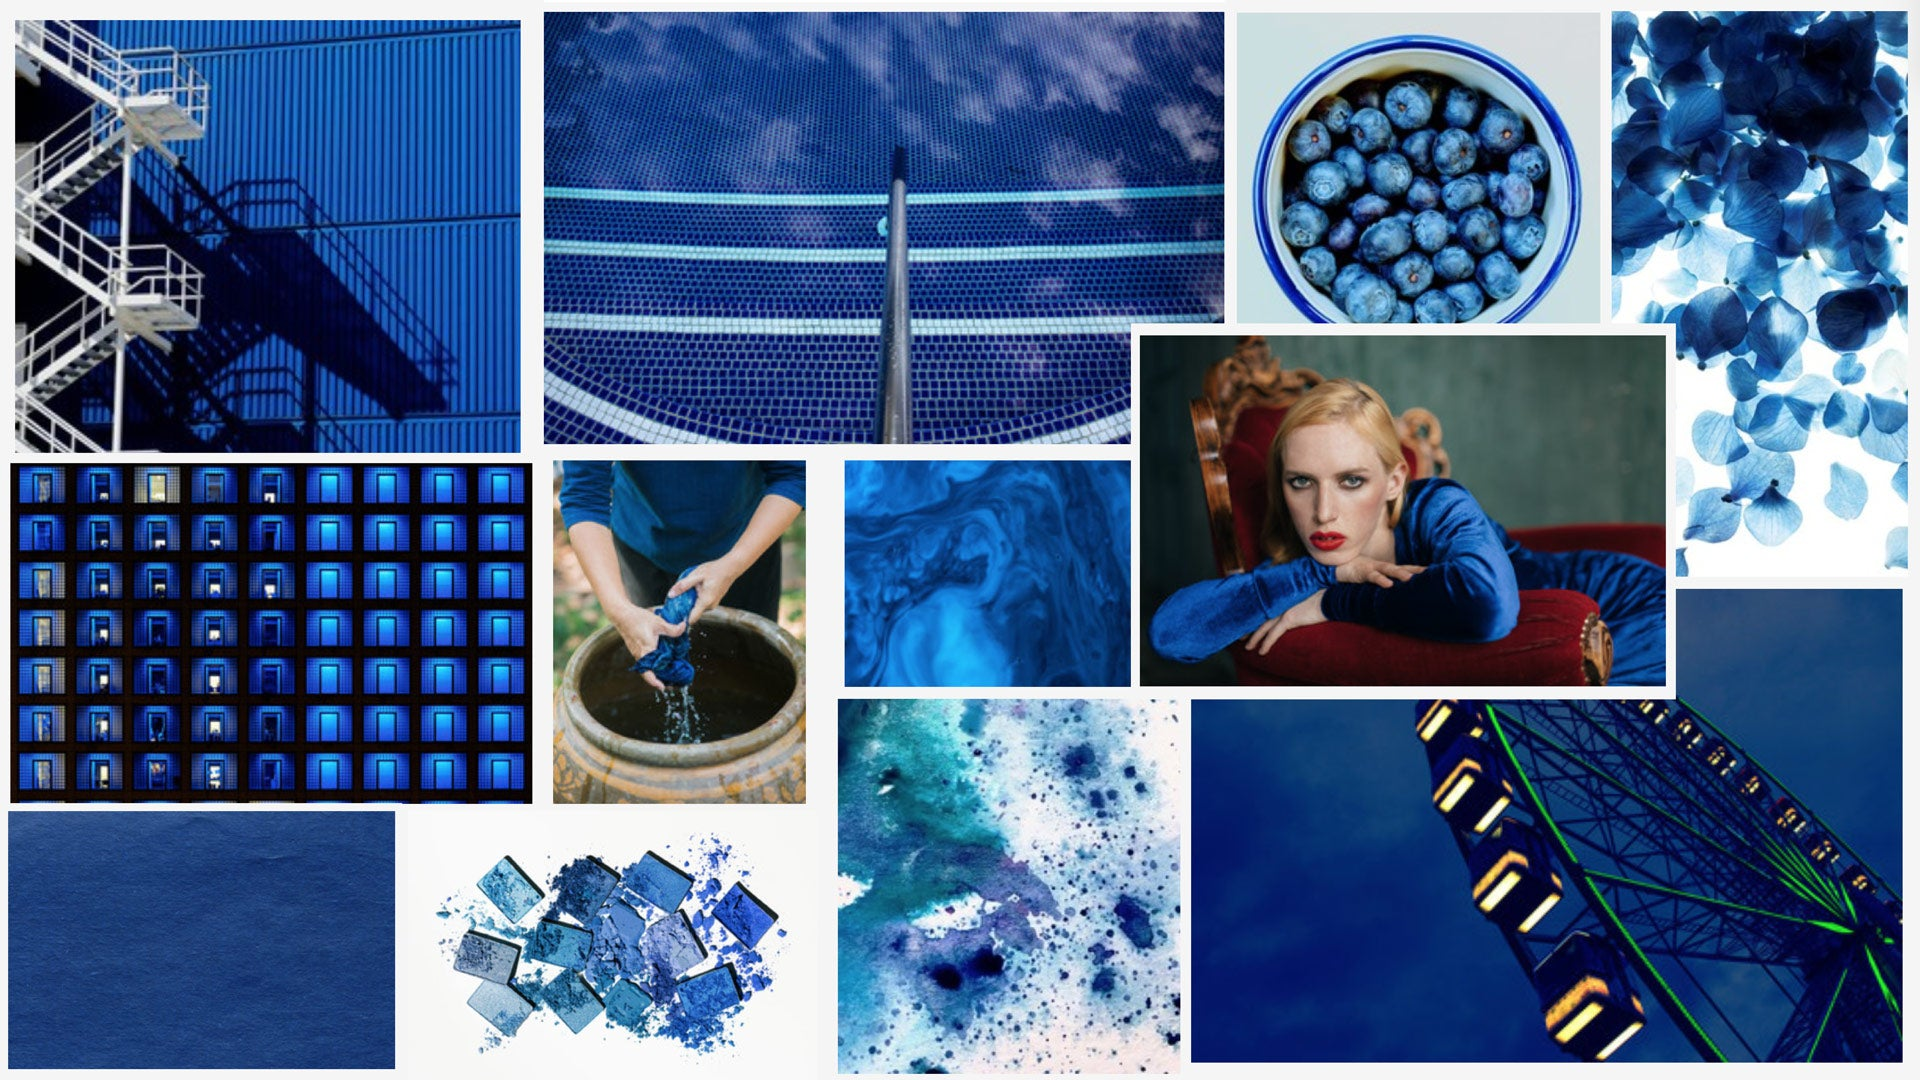 Pantone Colour of the Year 2020 'Classic Blue' moodboard